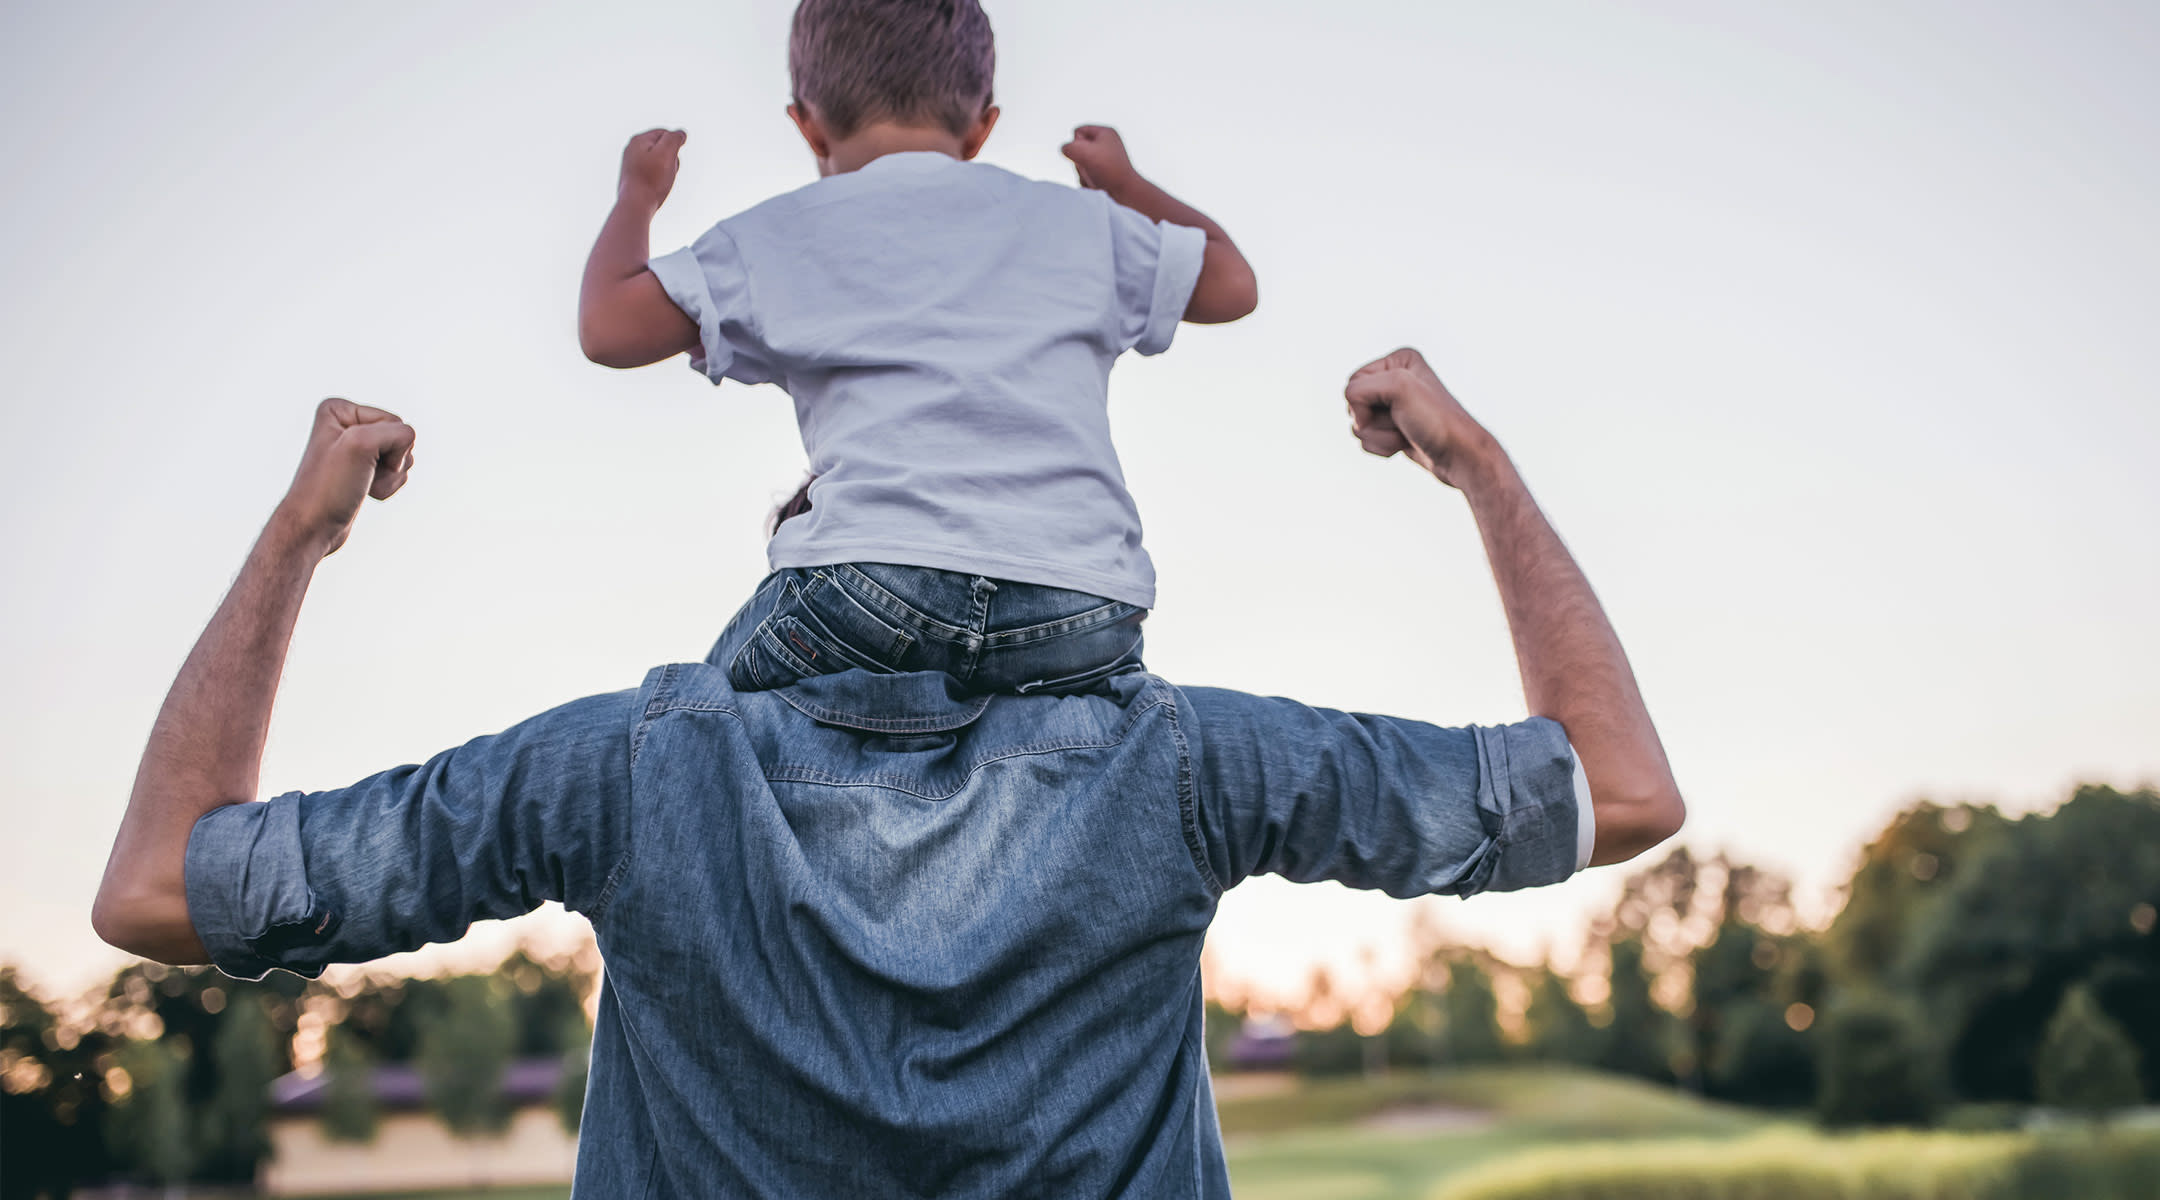 dad carrying toddler son on how shoulders, both strongly holding their arms out